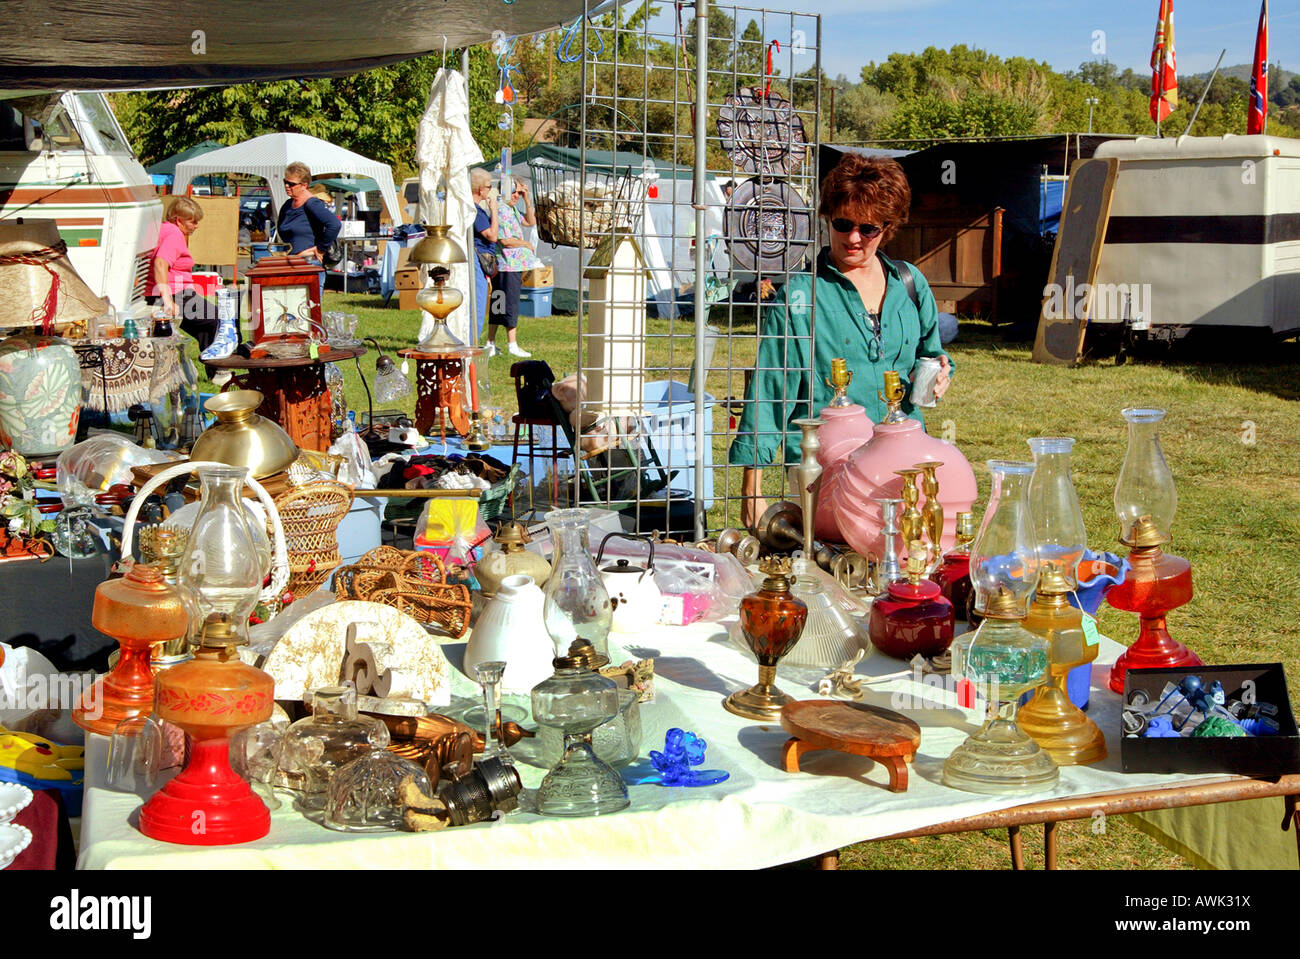 Stock Photo   Woman Examines Items On Table At Flea Market Swap Meet Sale  Including Number Of Very Old Oil Lamps Economy